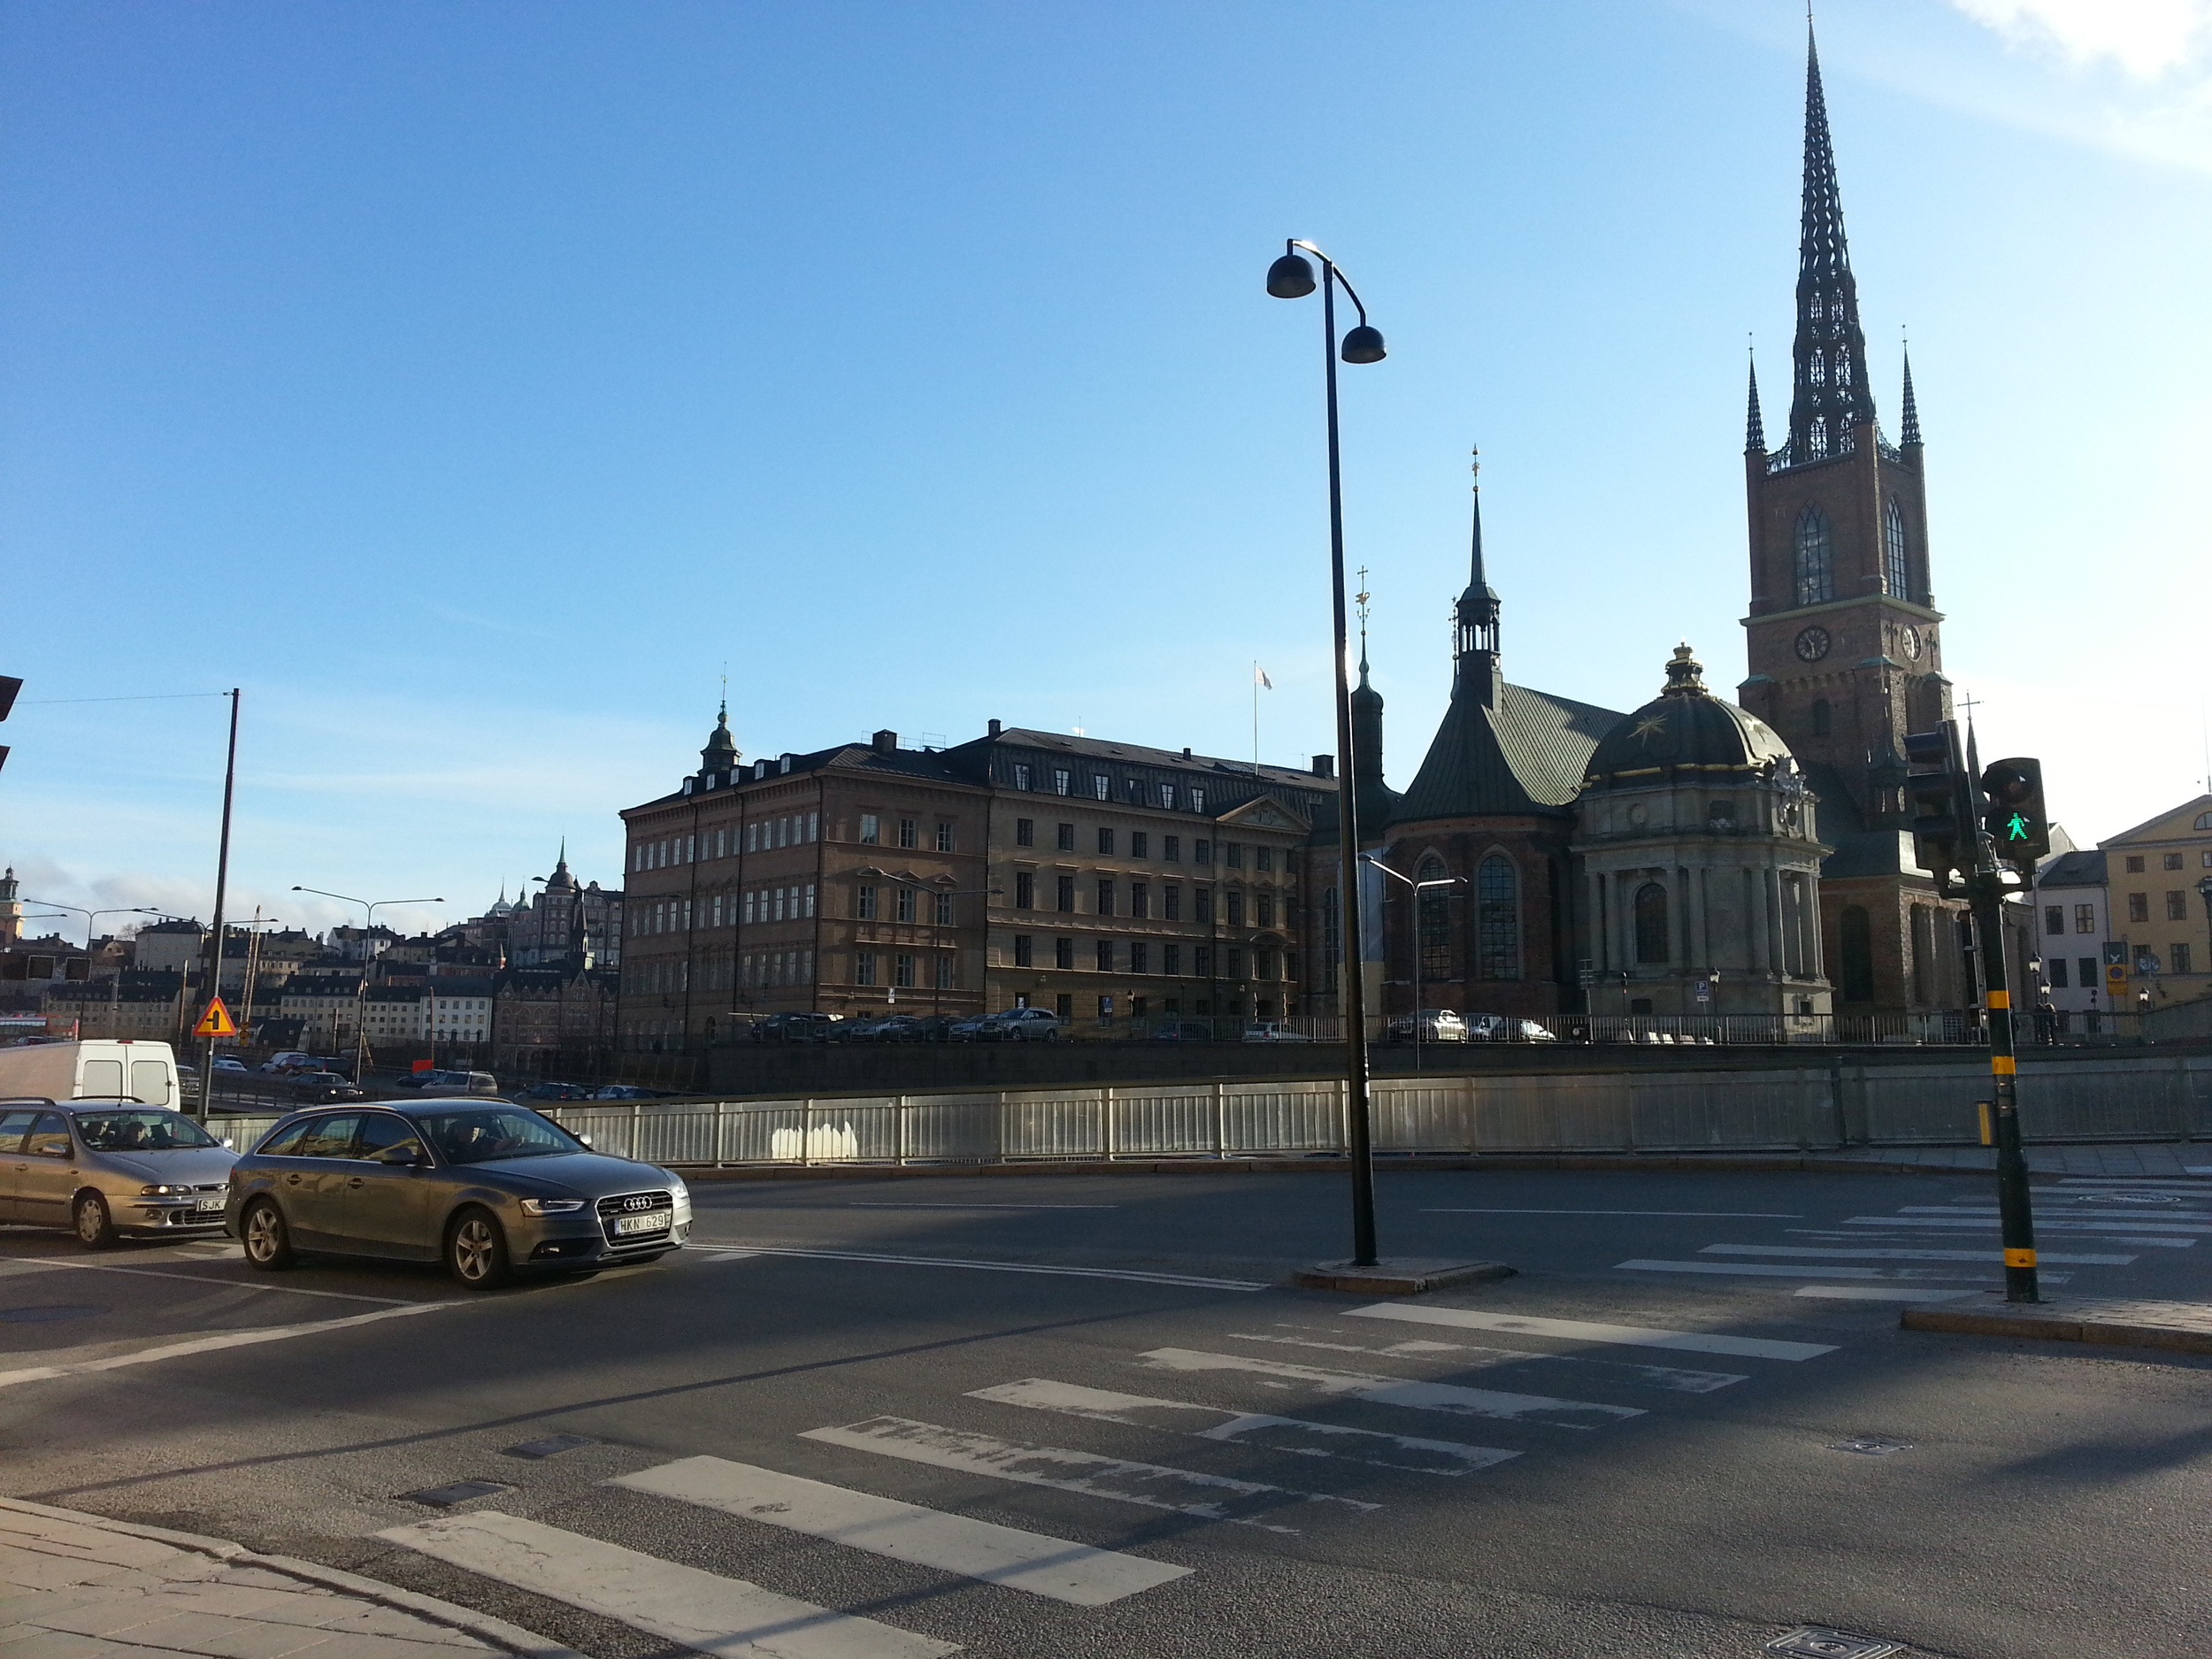 Intersection in Gamla Stan